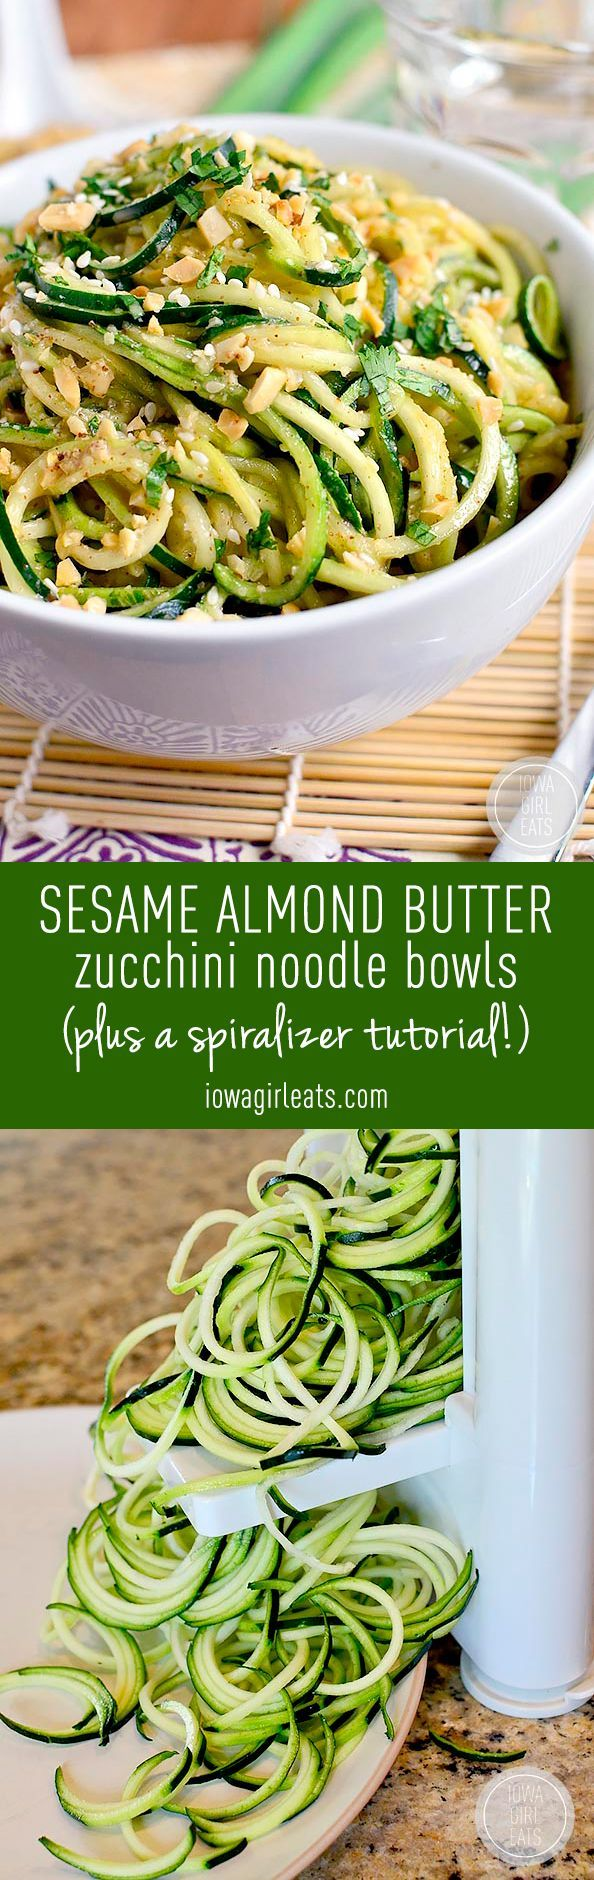 Description Sesame Almond Butter Zucchini Noodle Bowls are a veggie-based spin on peanut noodles. Super quick fresh and satisfying!